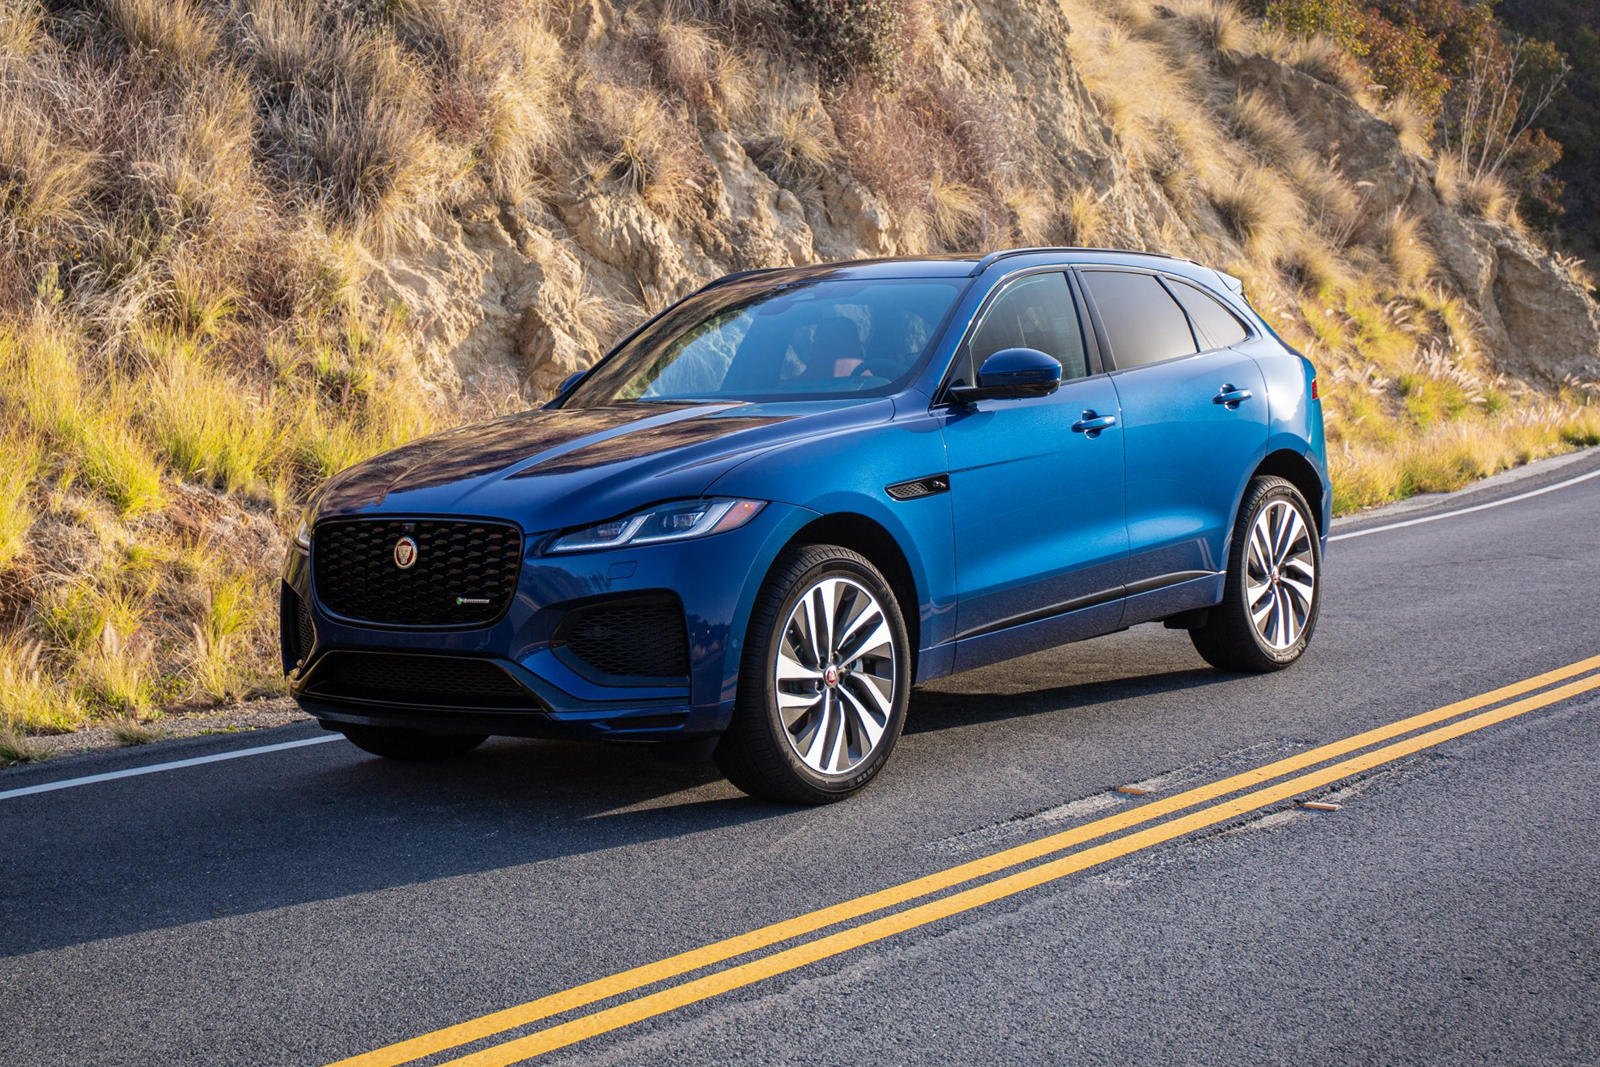 2021-jaguar-f-pace-first-drive-review:-luxury-refined